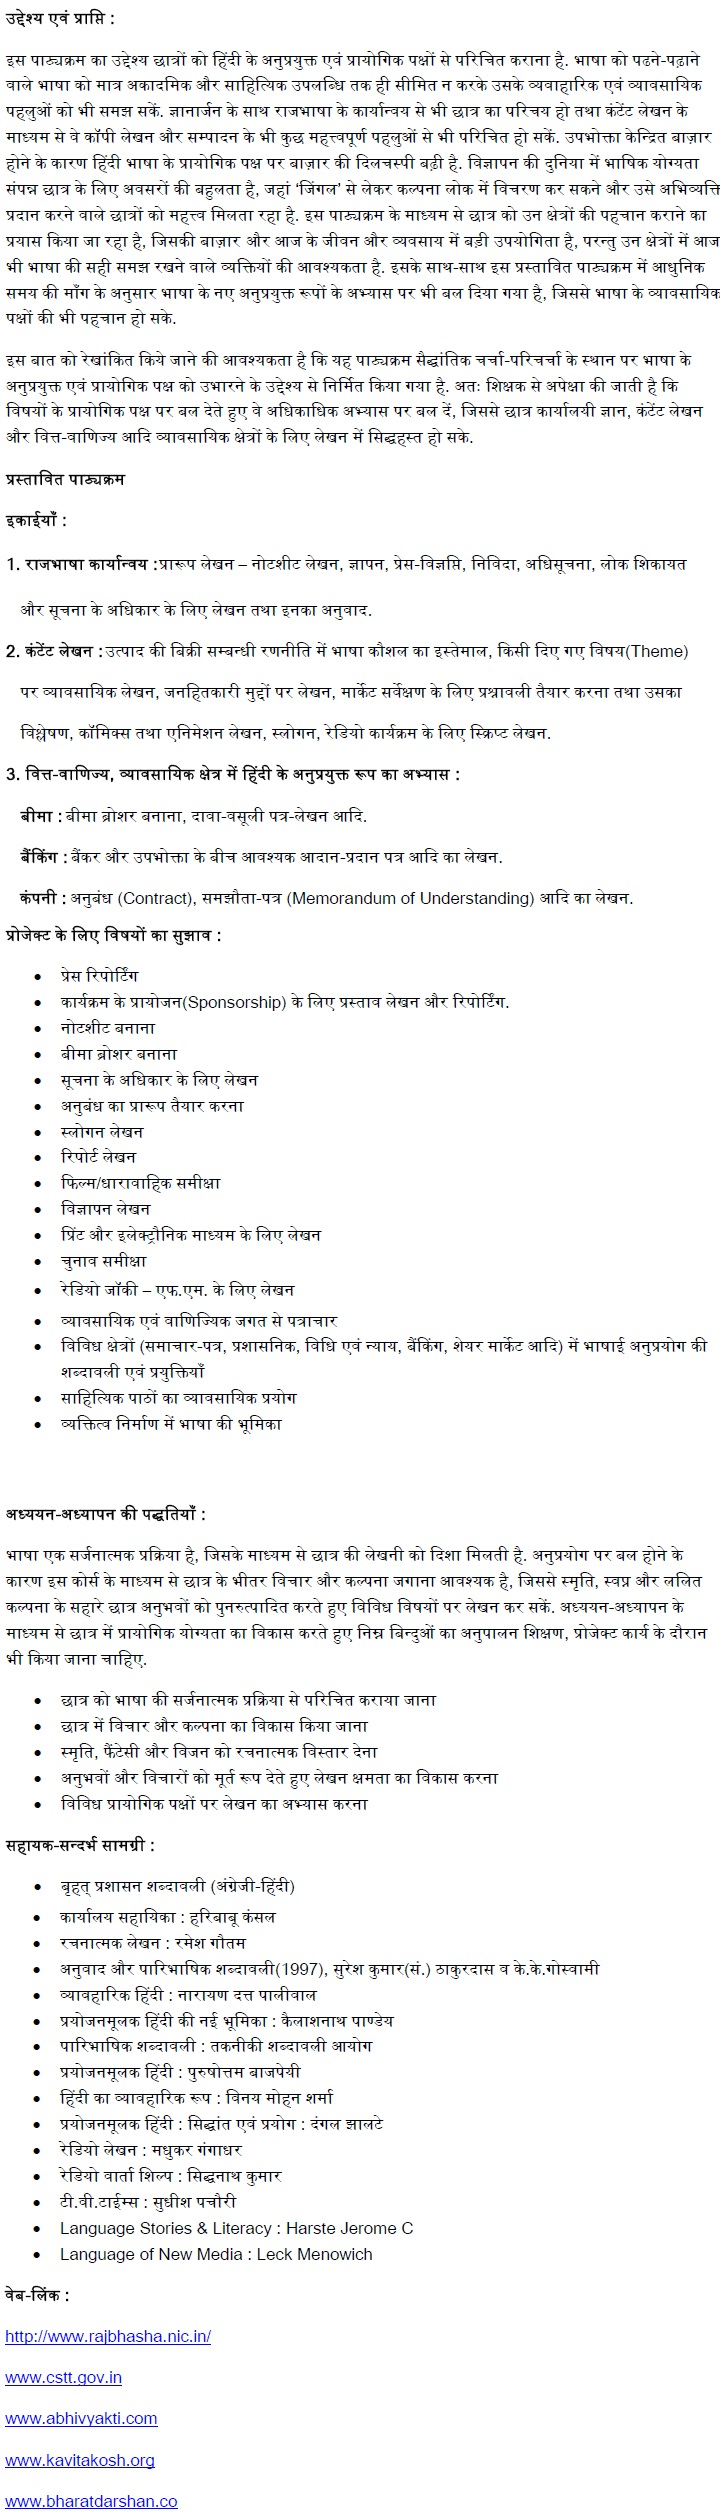 DU Foundation Course Syllabus - Applied Language Course - Hindi